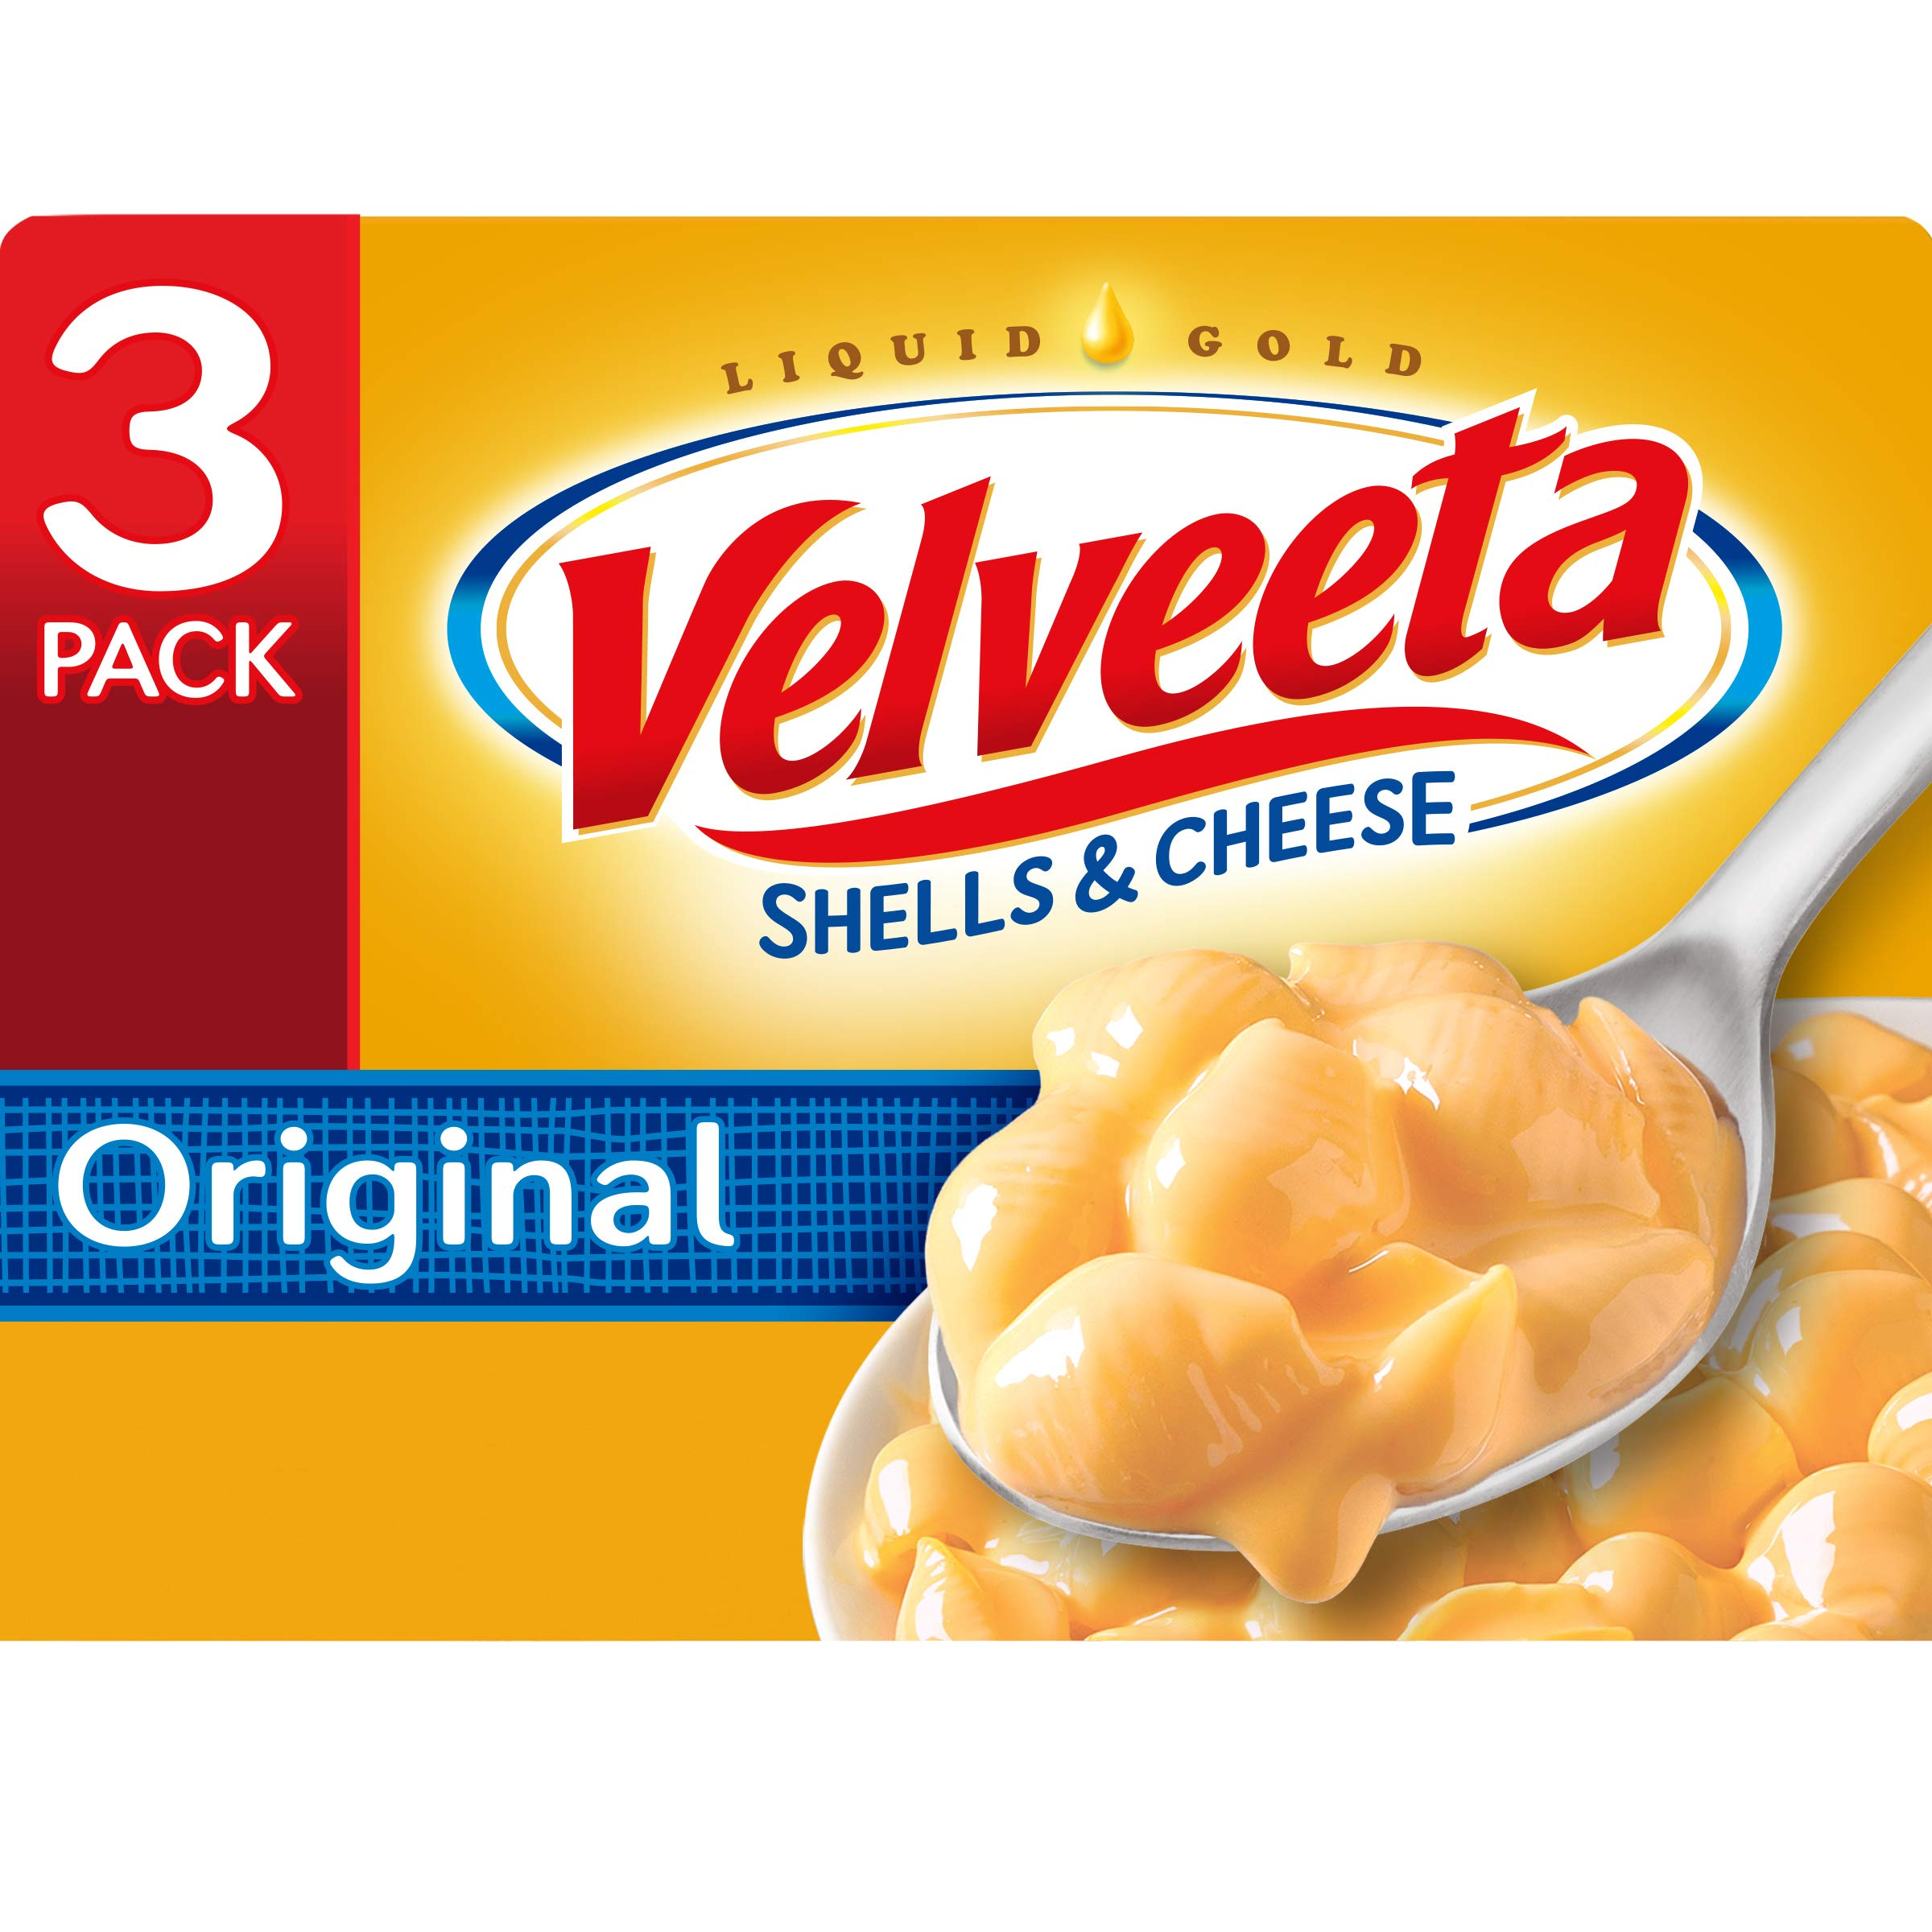 Velveeta Original Shells and Cheese Meal (12 oz Boxes, Pack of 3)